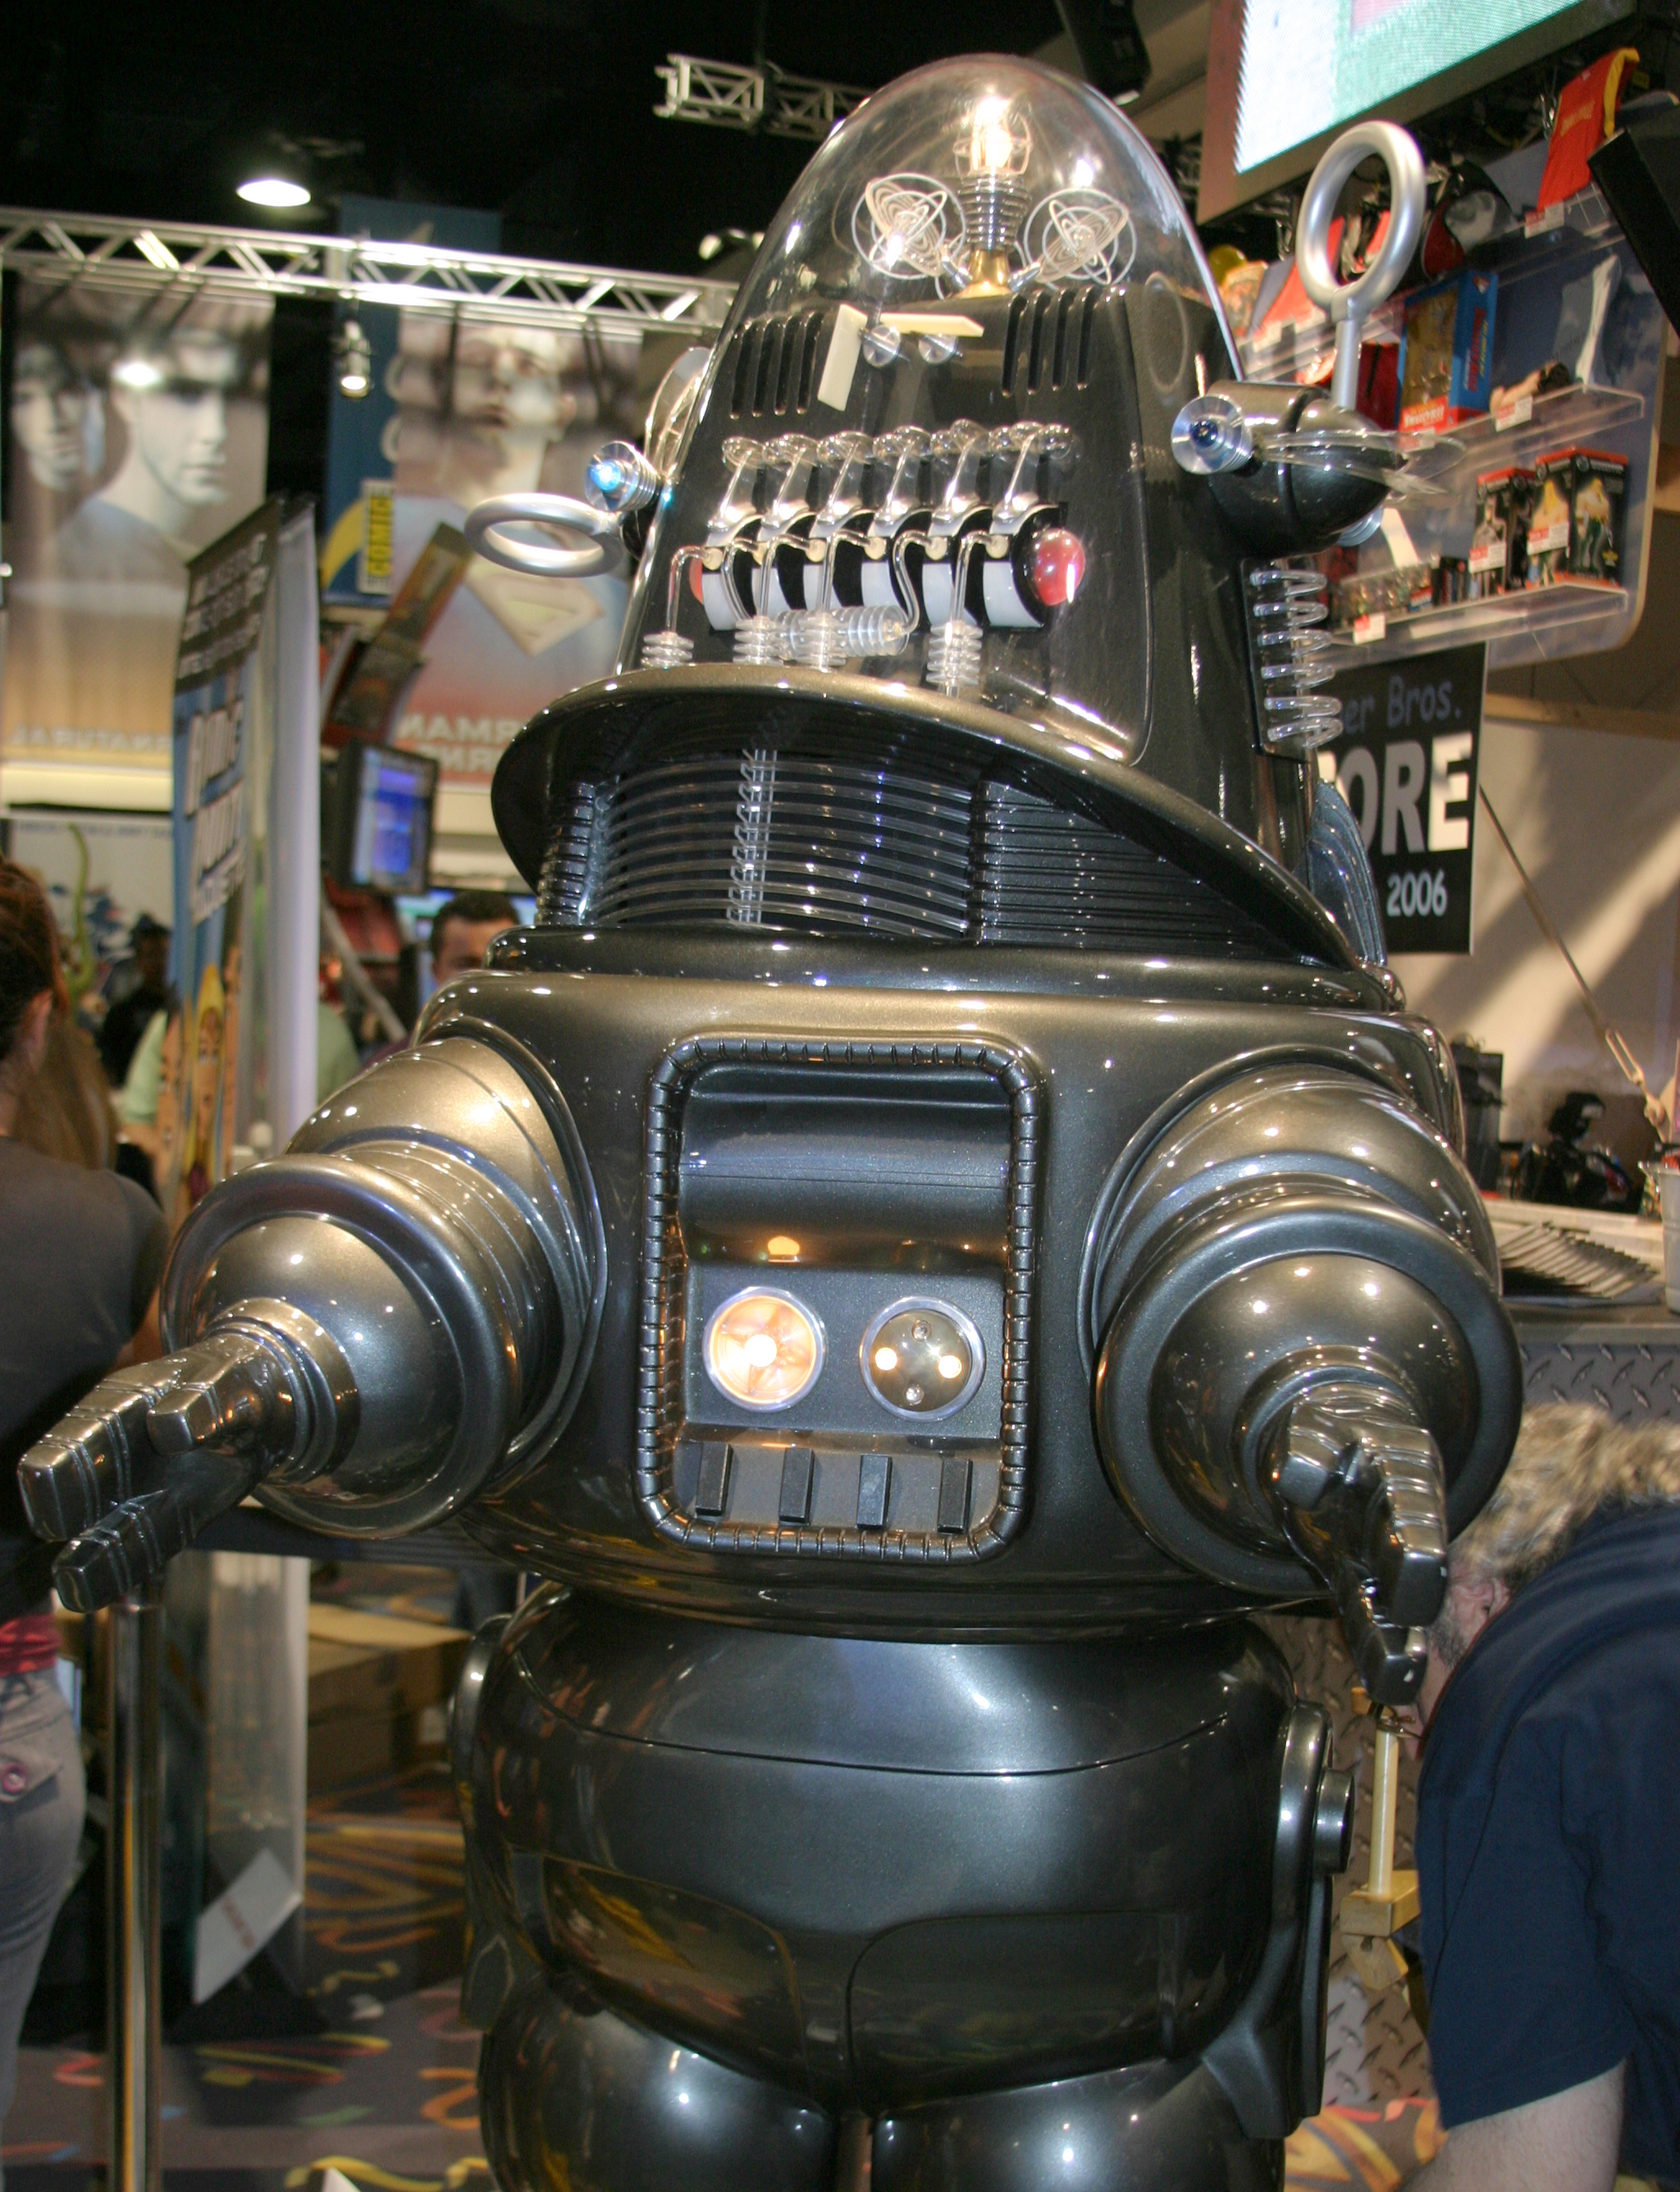 Robbie_the_Robot_San_Diego_Comic_Con_2006.jpg